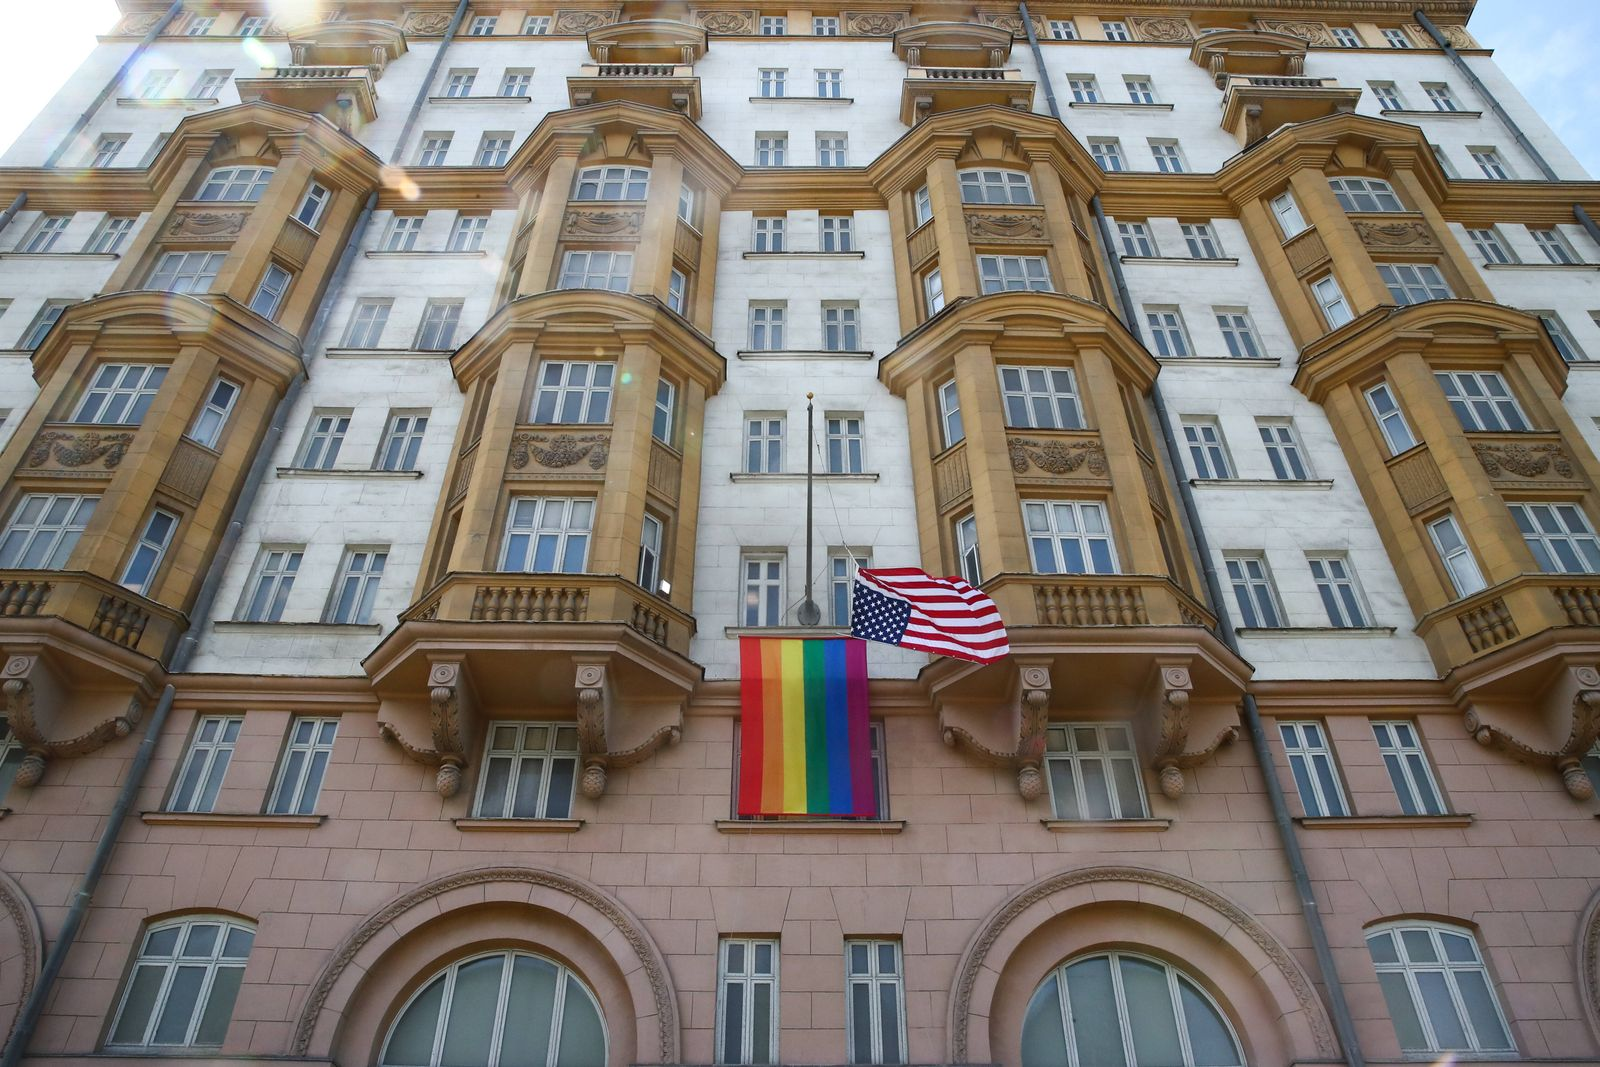 MOSCOW, RUSSIA - JUNE 25, 2020: The US national flag and an LGBT pride flag on the front facade of the US Embassy in Mo